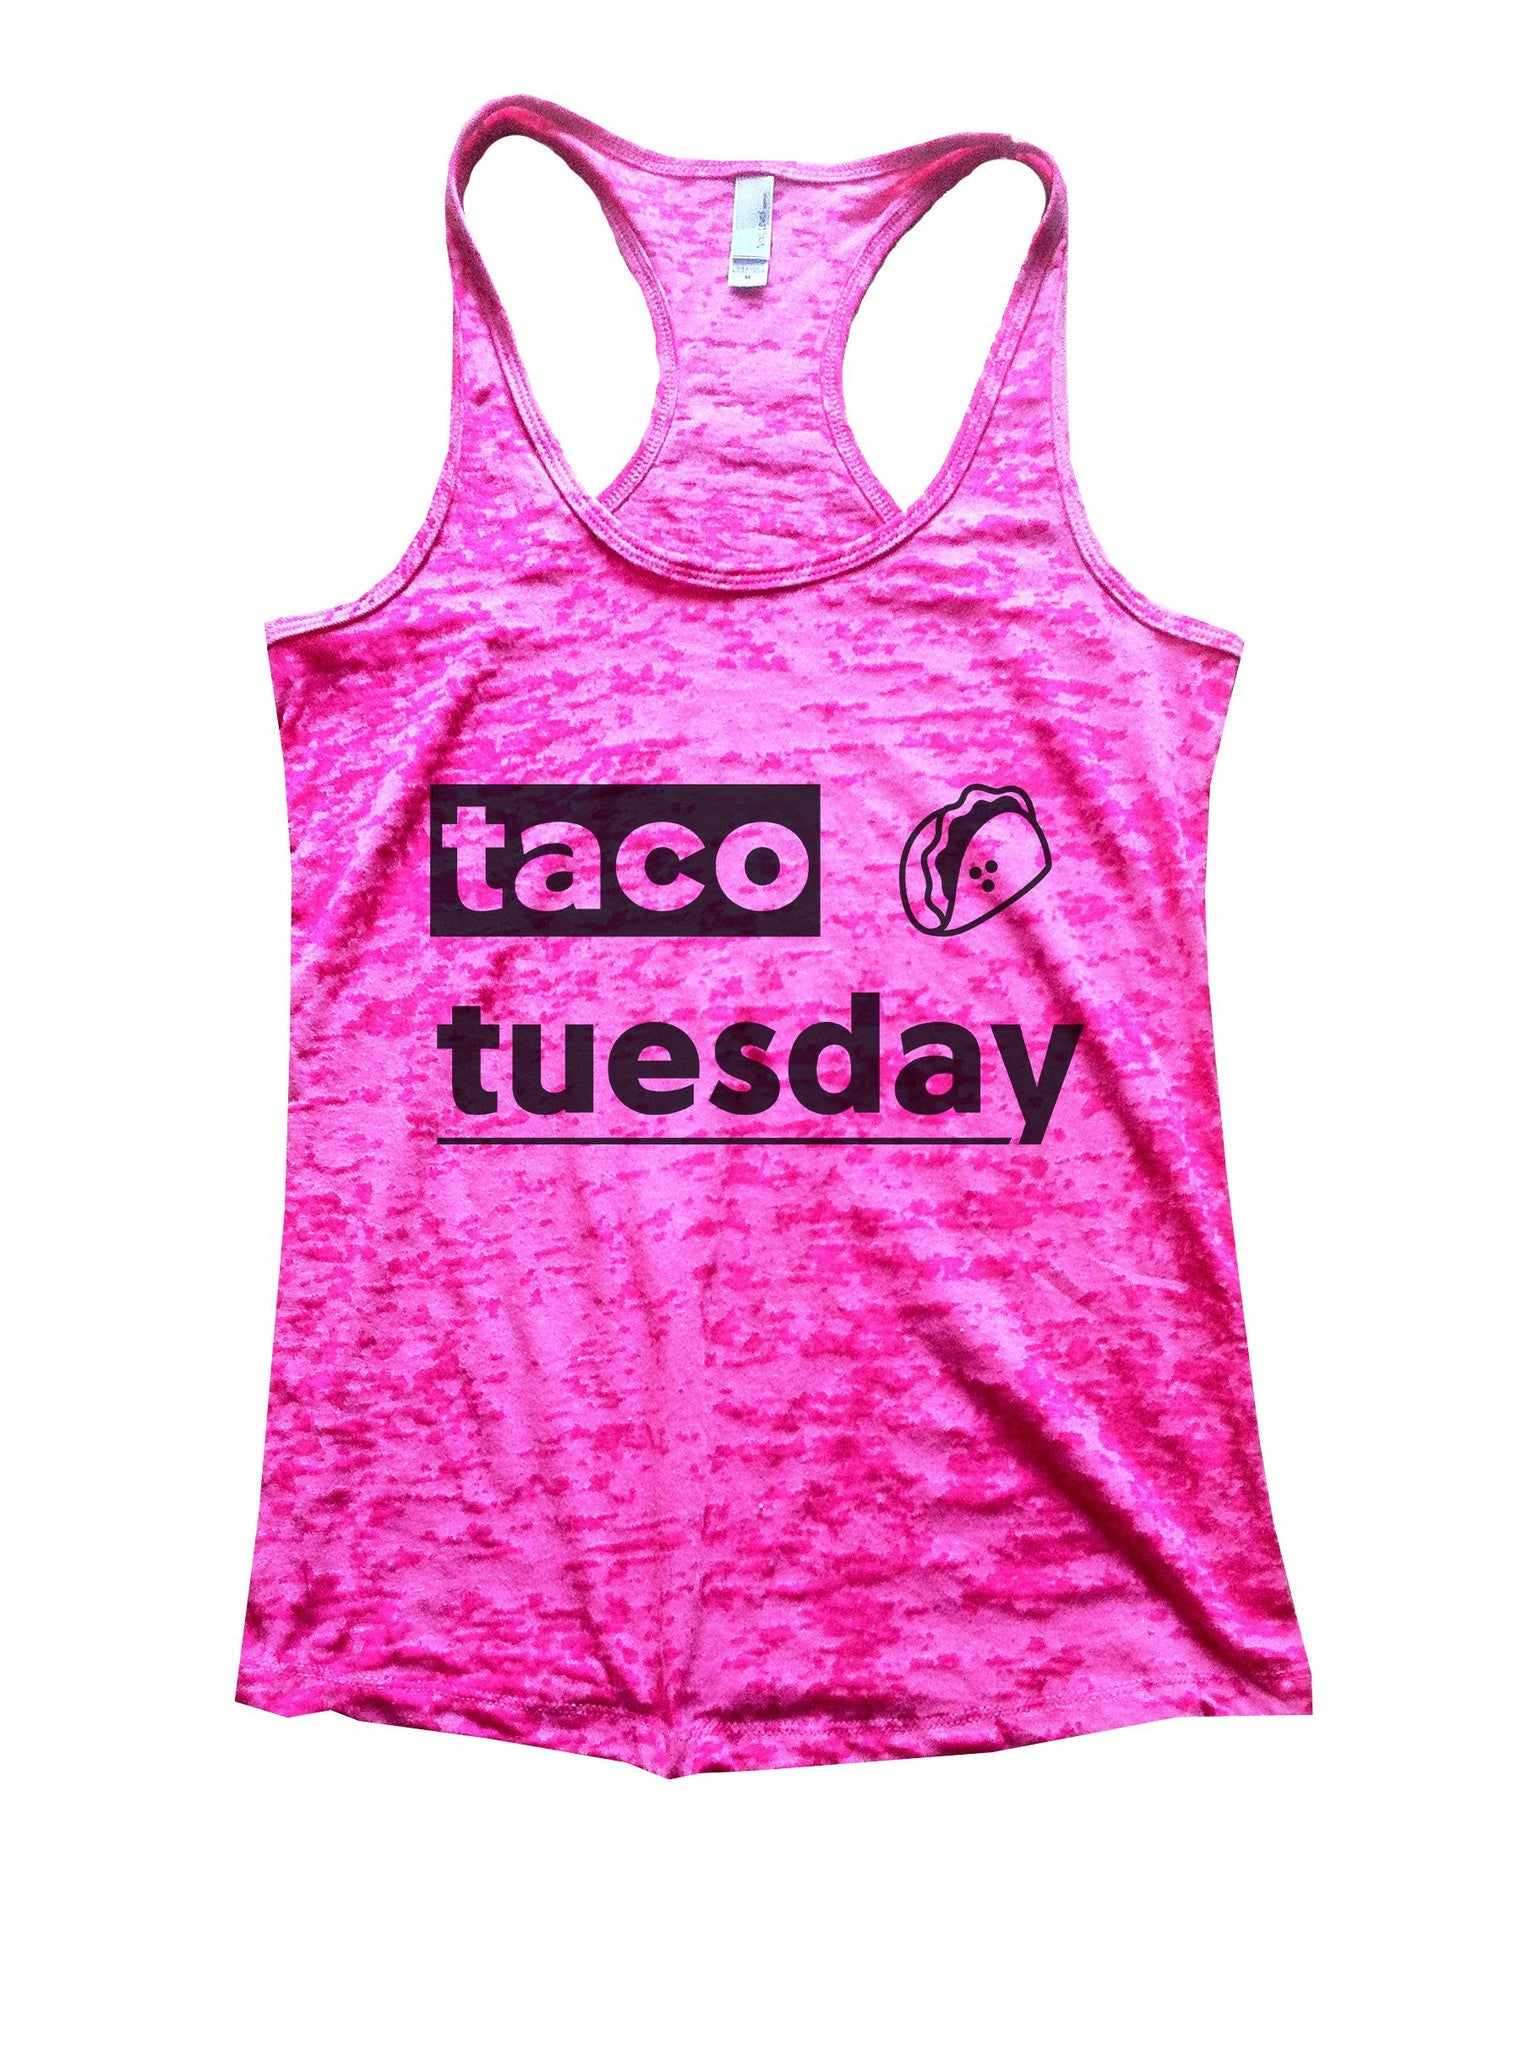 Taco Tuesday Burnout Tank Top By BurnoutTankTops.com - 1084 - Funny Shirts Tank Tops Burnouts and Triblends  - 3